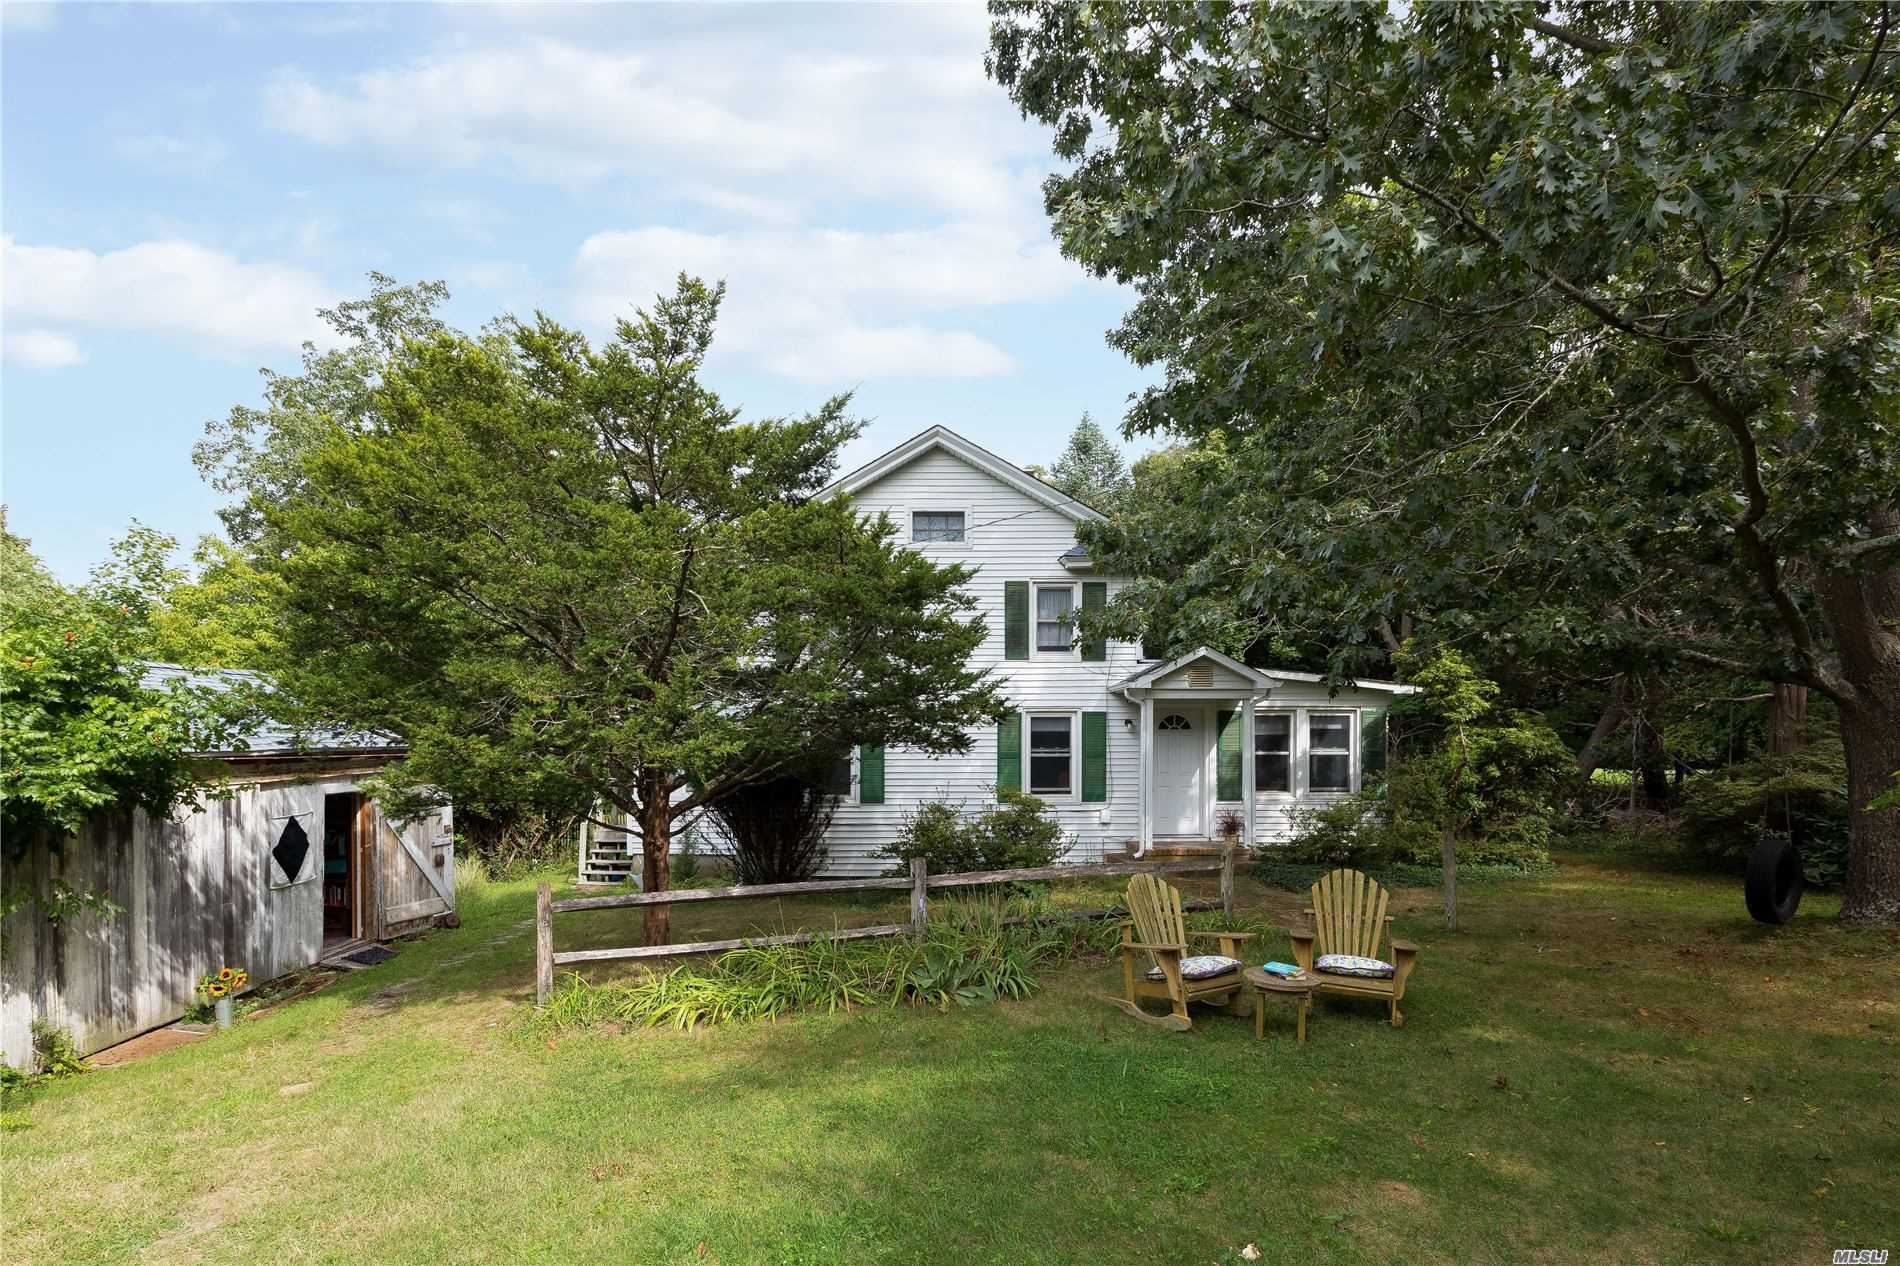 625 Private Rd #2, Southold, NY 11971 - MLS#: 3162440